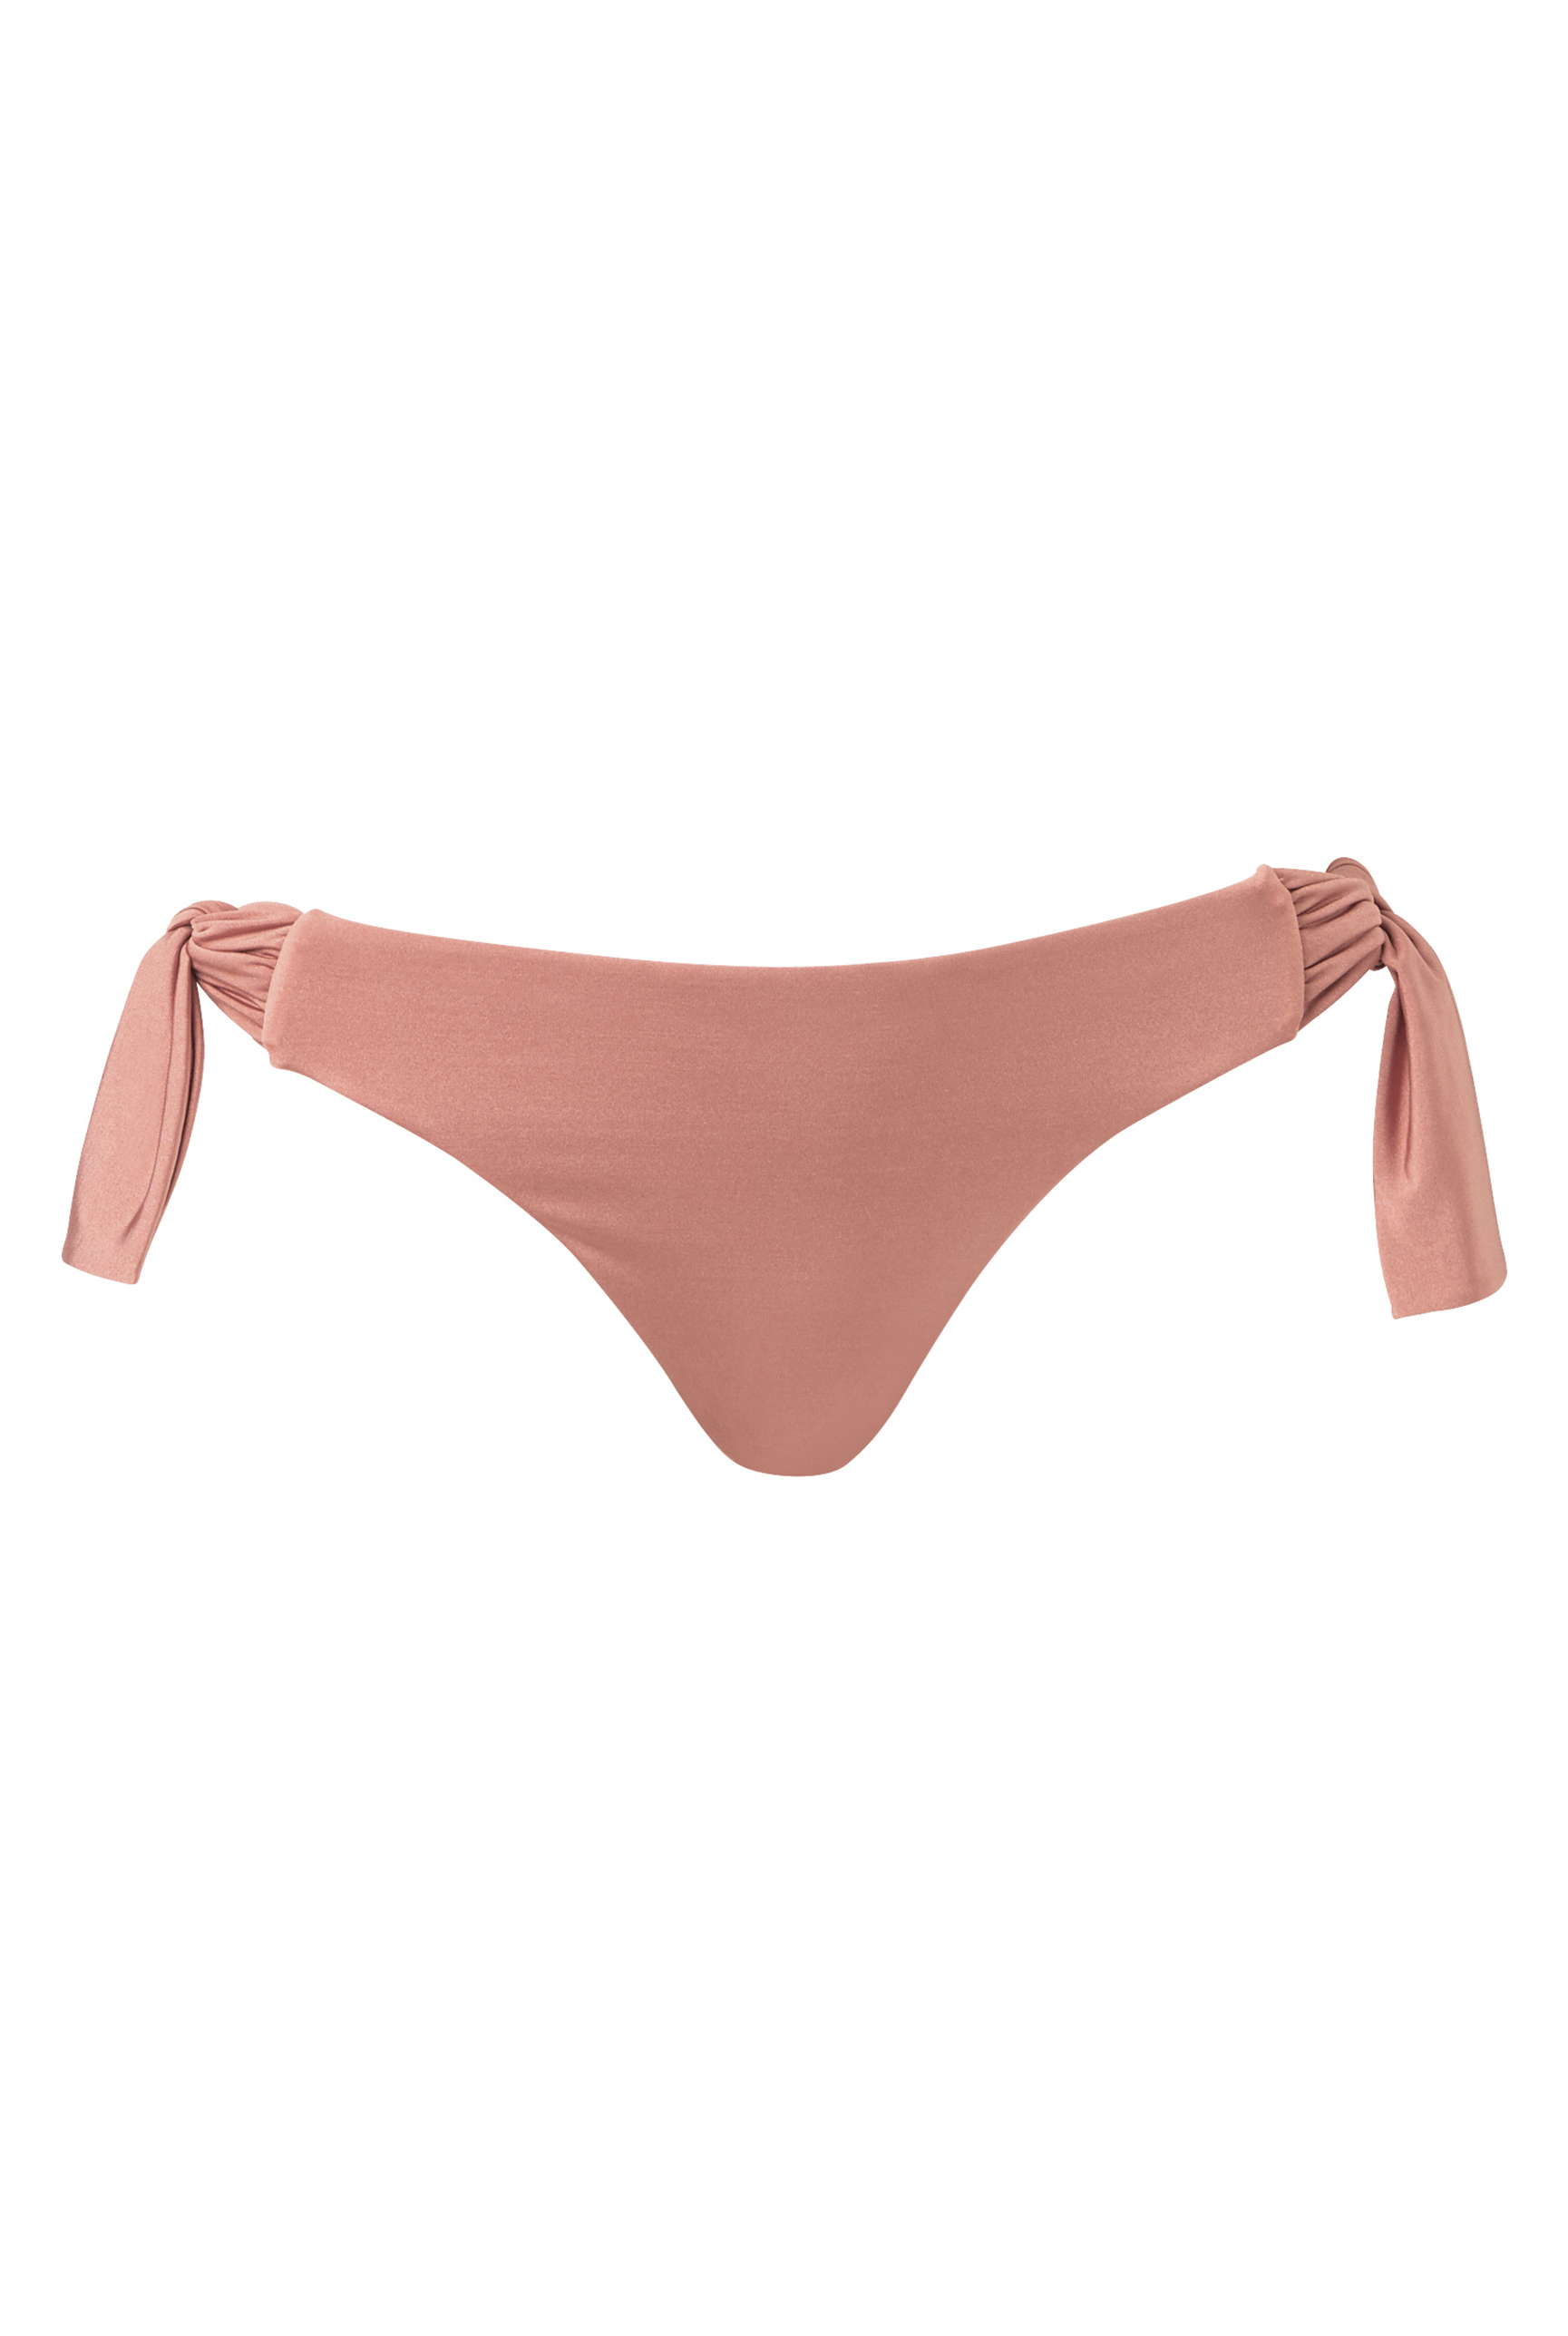 60198725_witchery-swim-palm-twist-bottom-rrp79-90